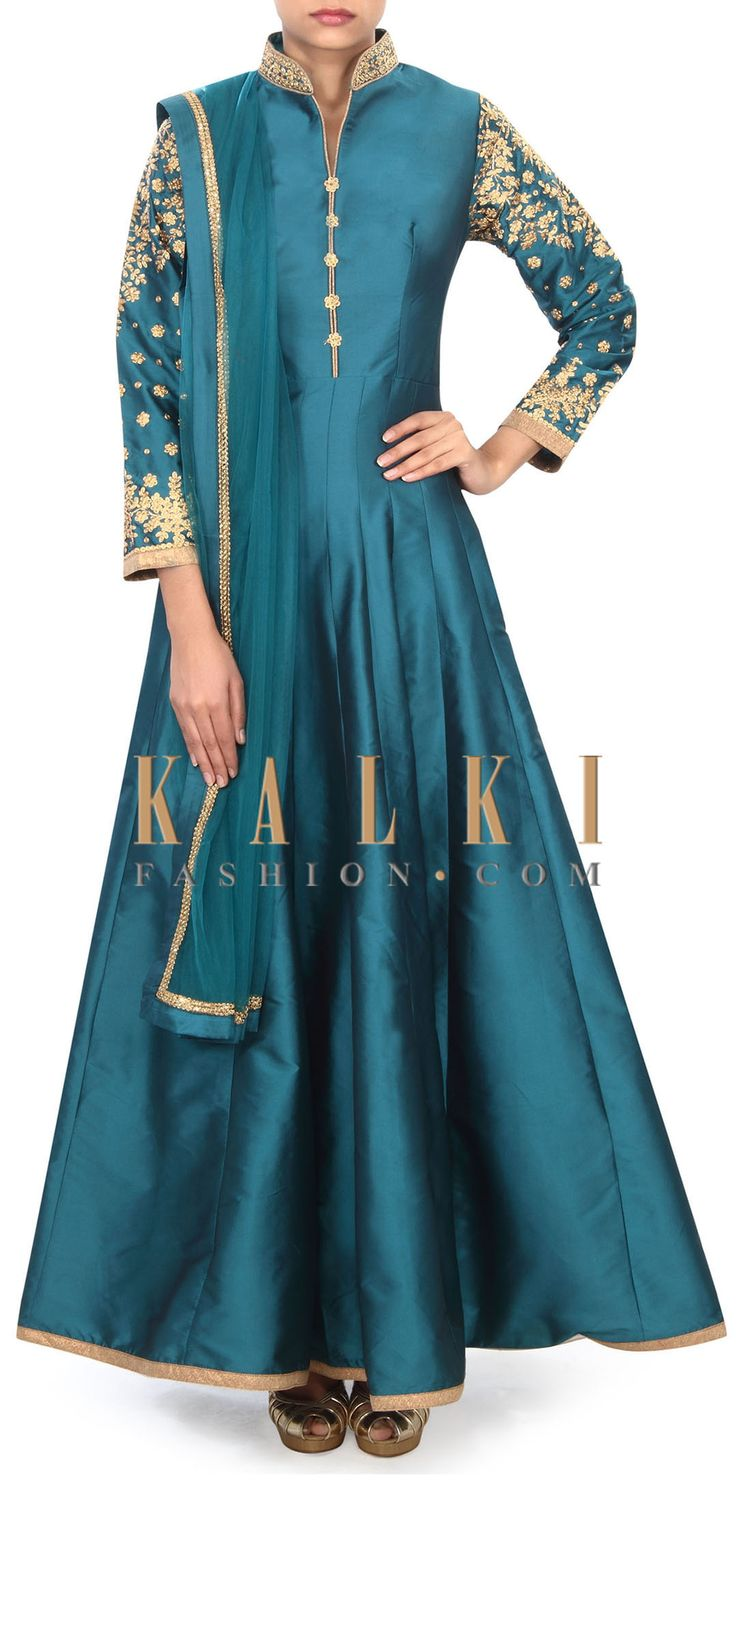 Buy Online from the link below. We ship worldwide (Free Shipping over US$100) Price- $129 Click Anywhere to Tag http://www.kalkifashion.com/teal-green-anarkali-suit-adorn-in-collar-and-sleeve-embroidery-only-on-kalki.html